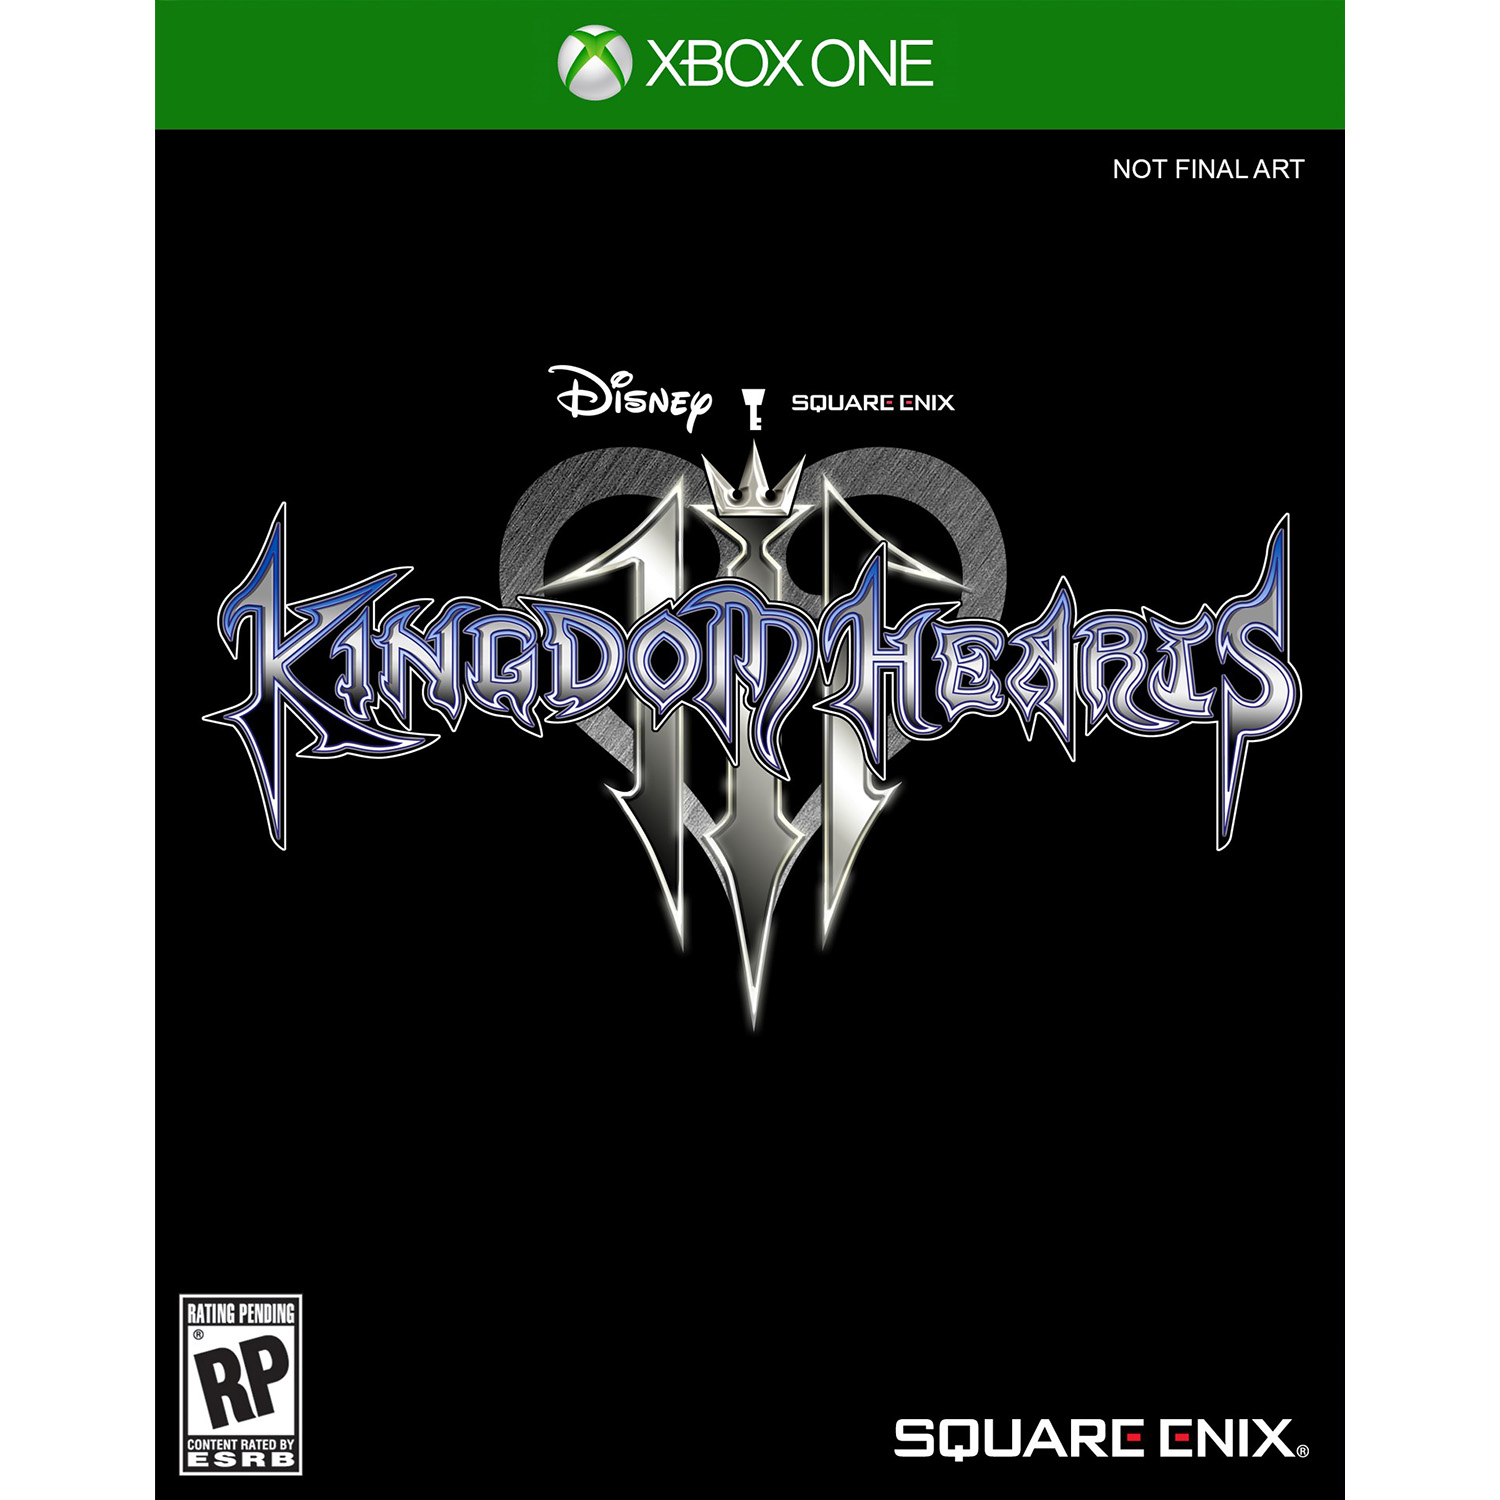 Kingdom Hearts 3, Square Enix, Xbox One, 662248915067